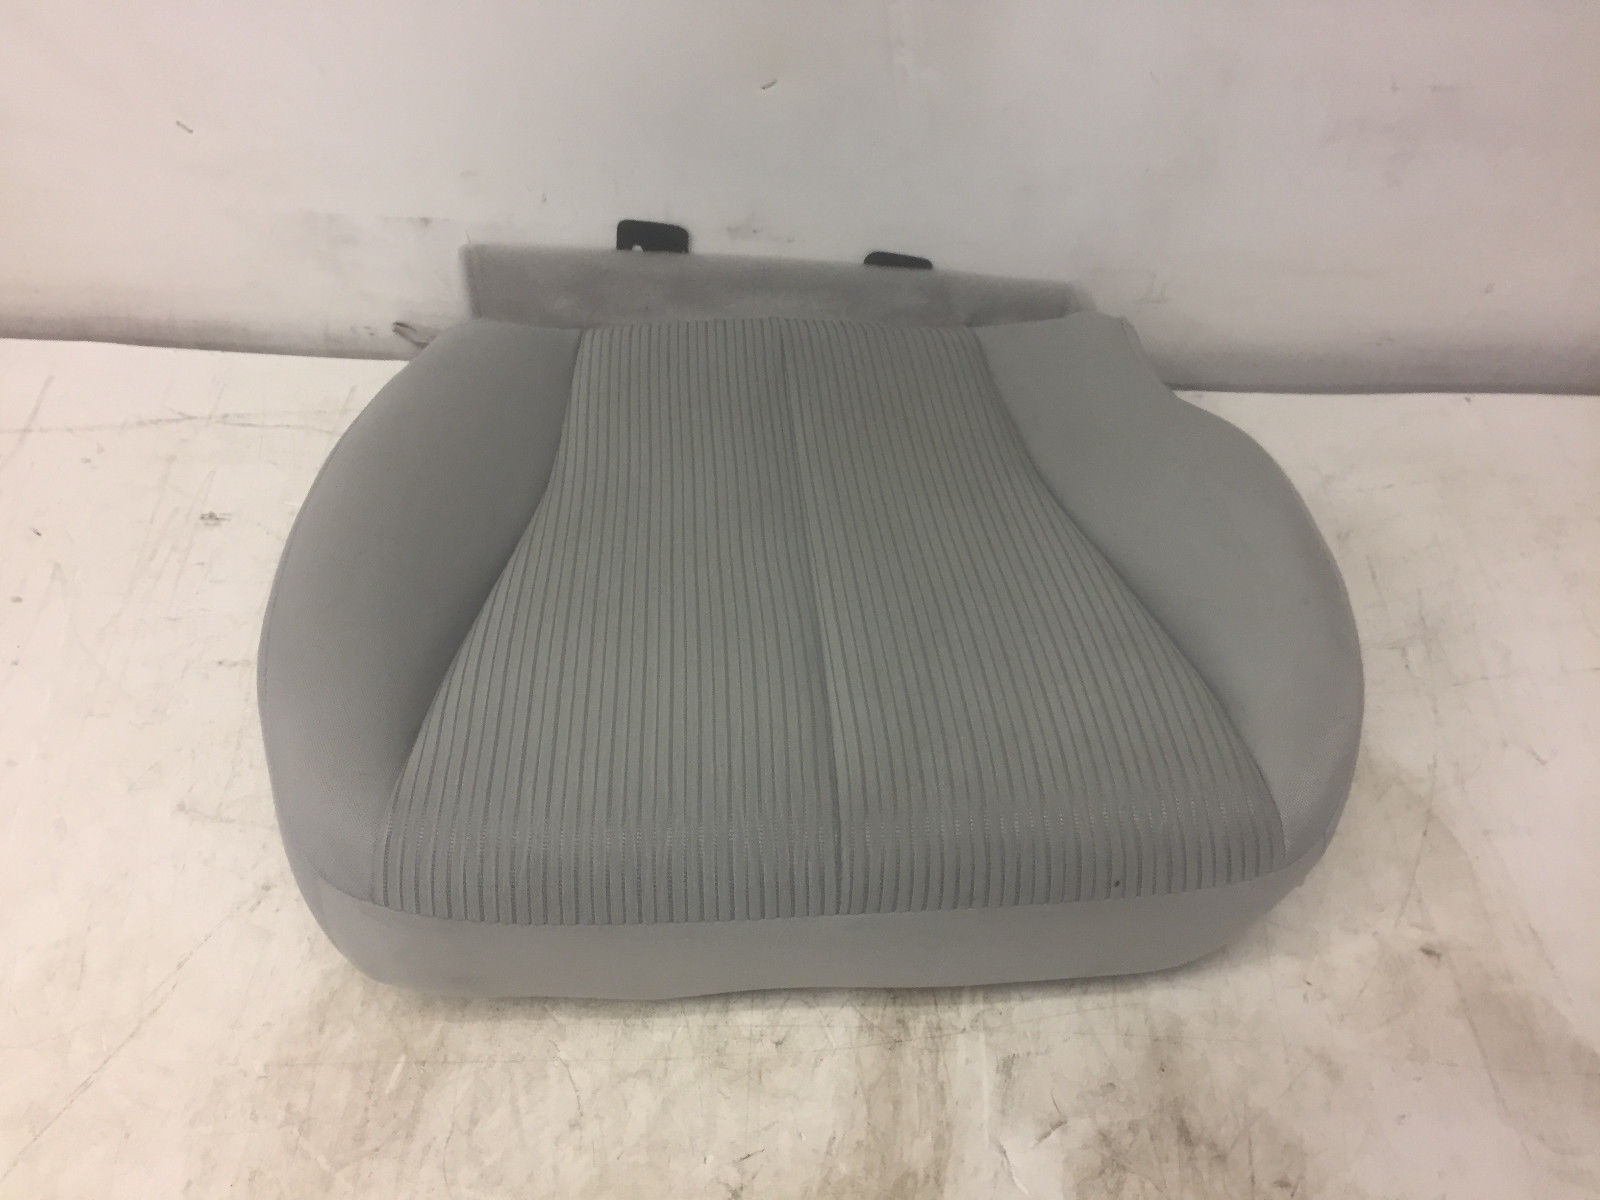 2013 Toyota Venza Front Right Passenger Said Lower Cover Grey Seat